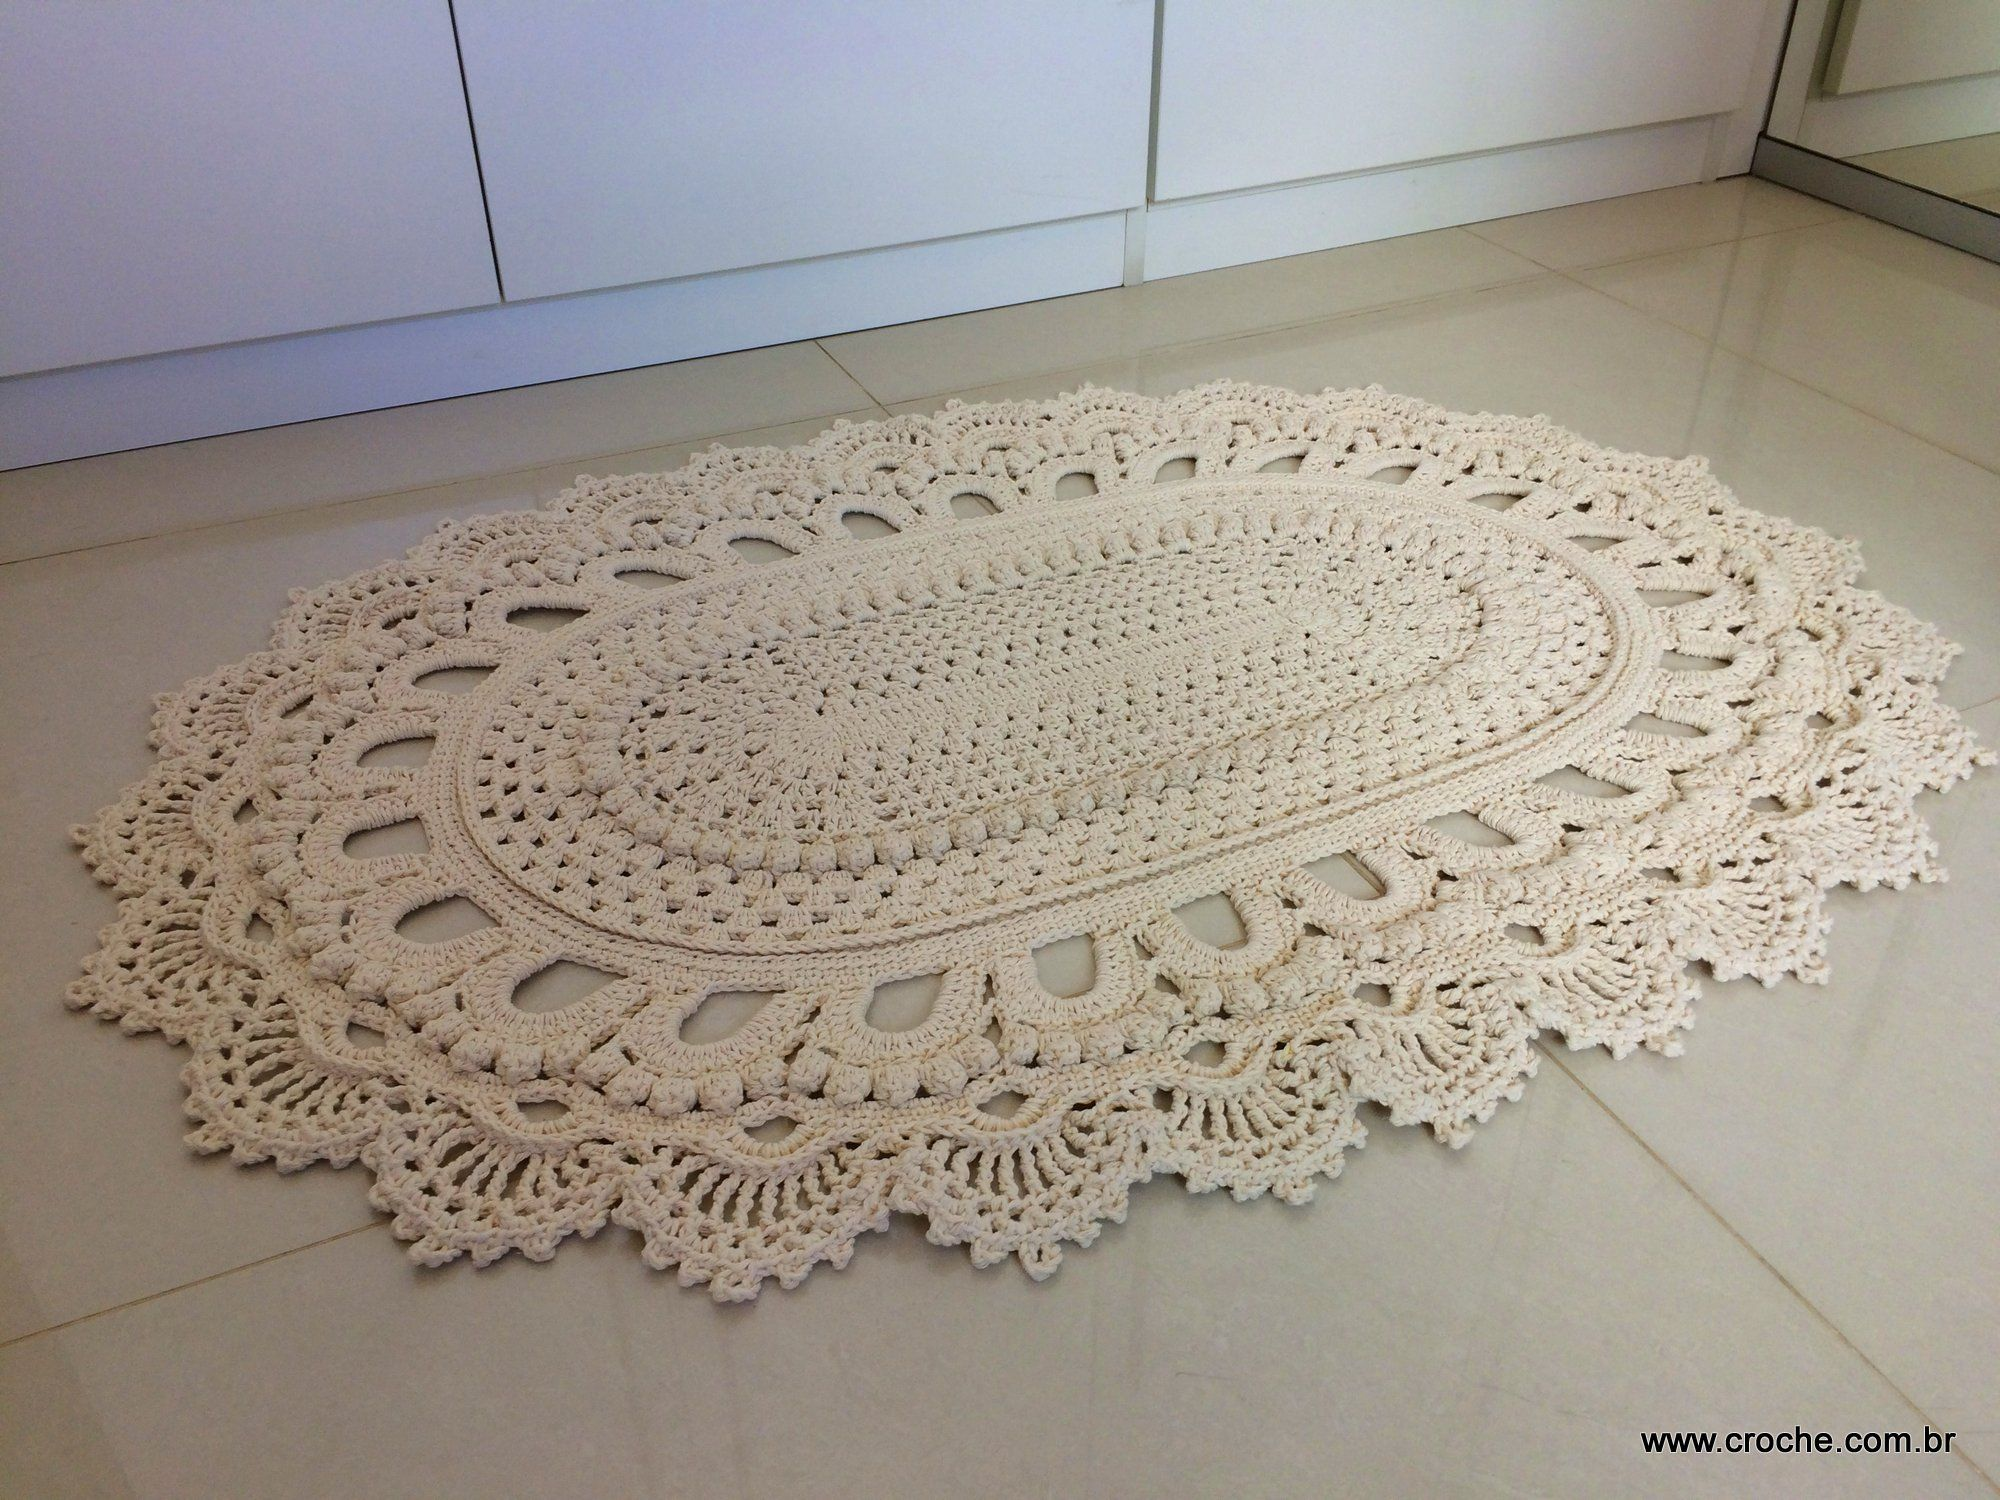 Tapete Oval Modelo Russo Passo A Passo Parte2 Crochet And Crafts -> Tapete De Croche Oval Simples Passo A Passo